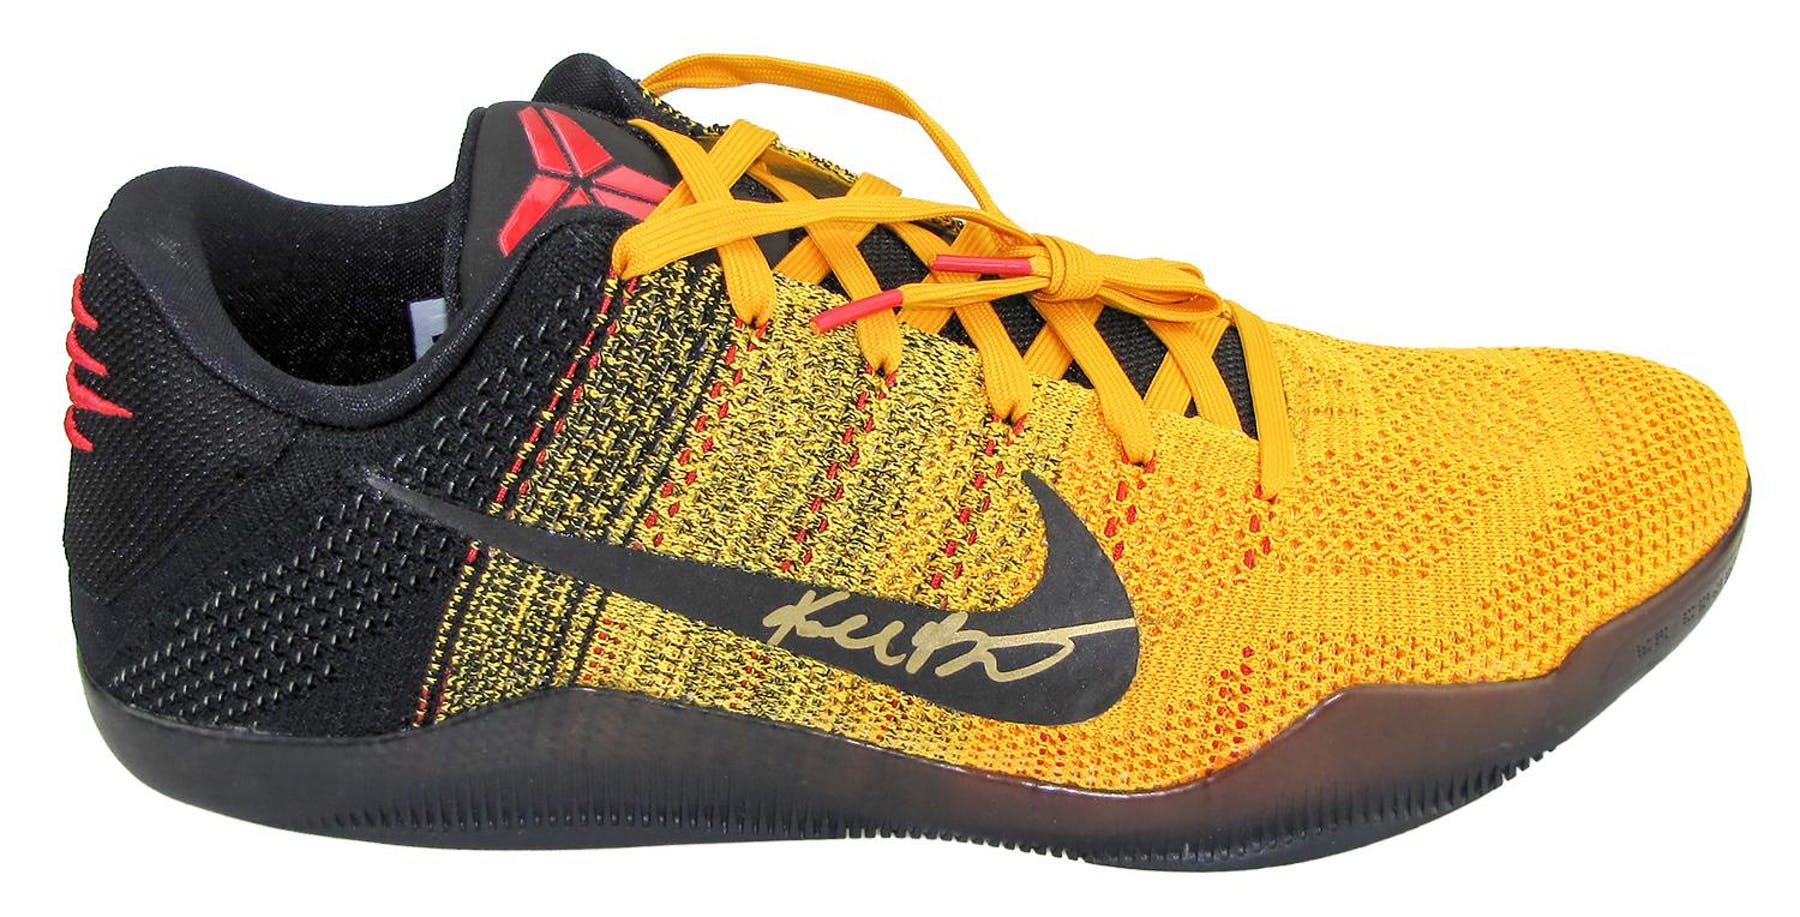 dcb5ae74b9f7 ... 2016 Panini National Super VIP Party Exclusive Kobe Bryant Autographed  Nike XI Elite Low Sneakers 3